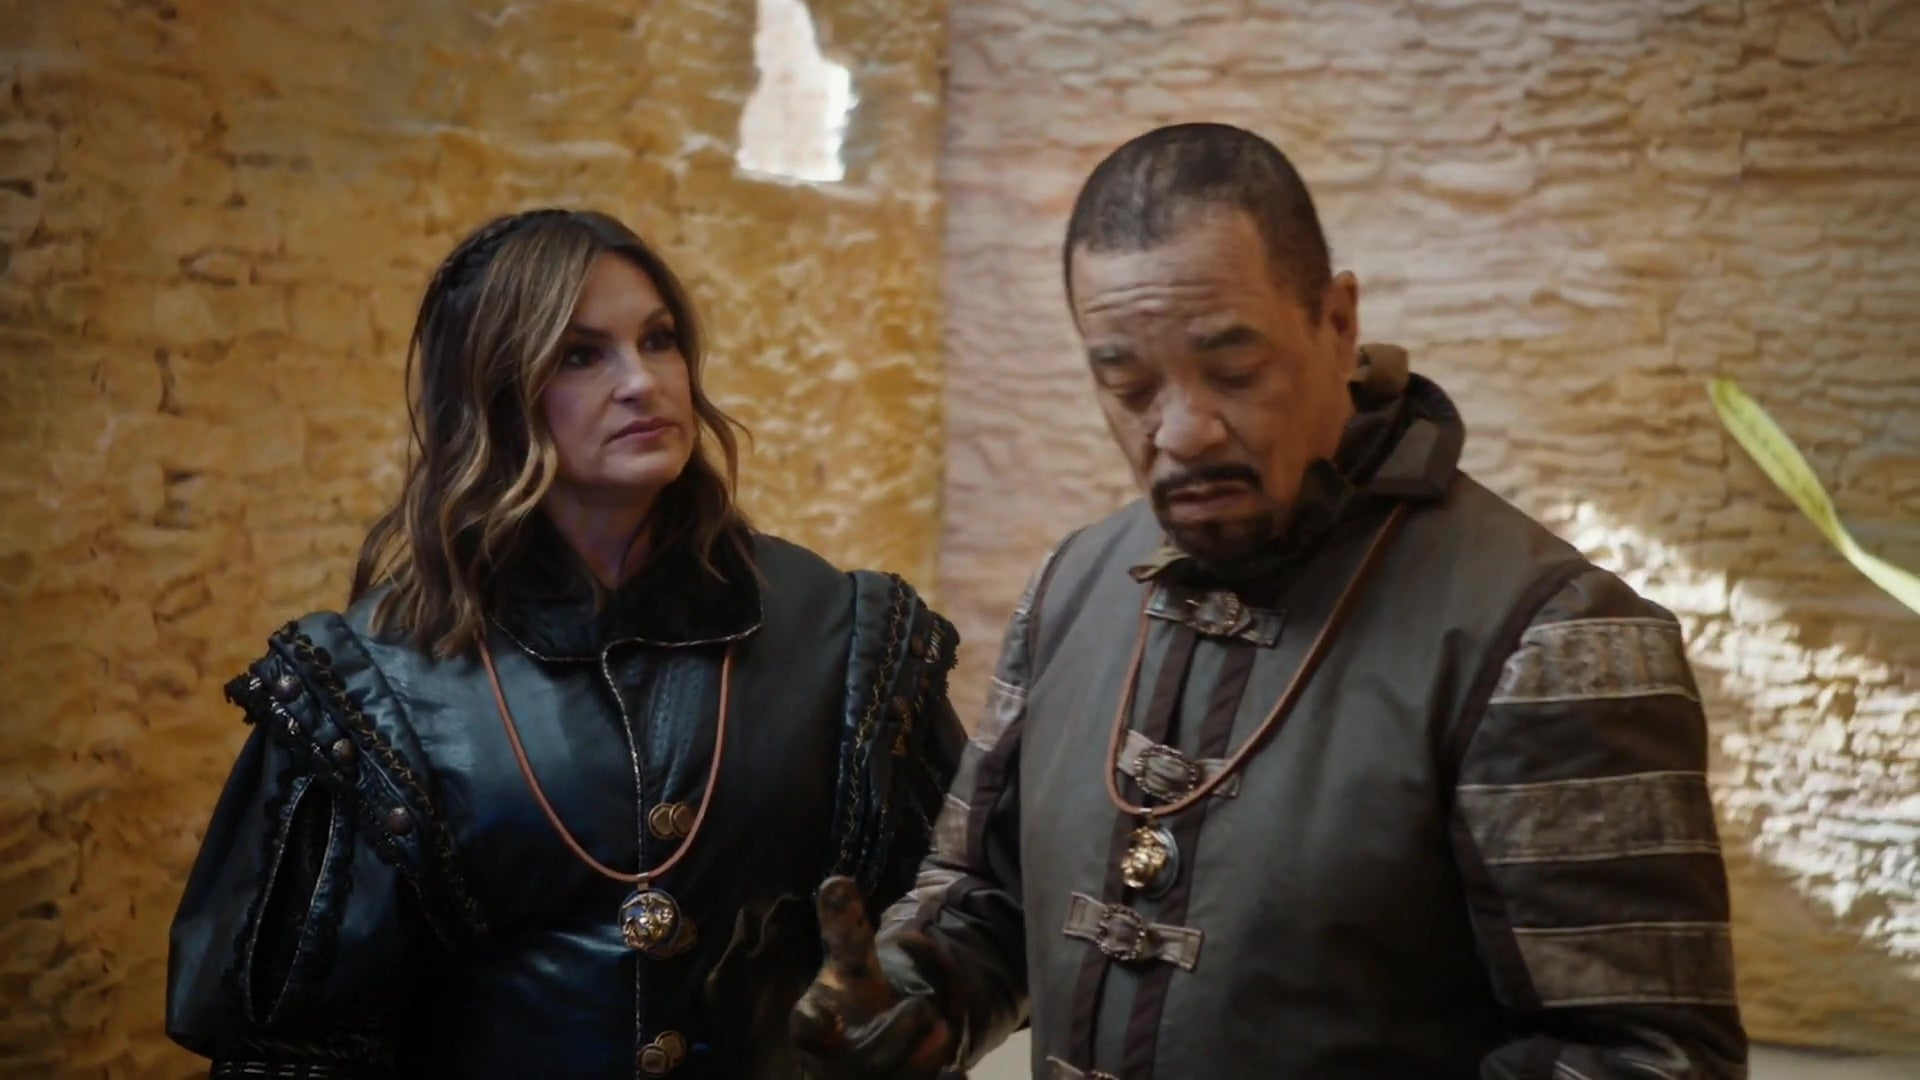 Mariska Hargitay and Ice-T, dressed up in Game of Thrones costumes, in a still from Saturday Night Live.